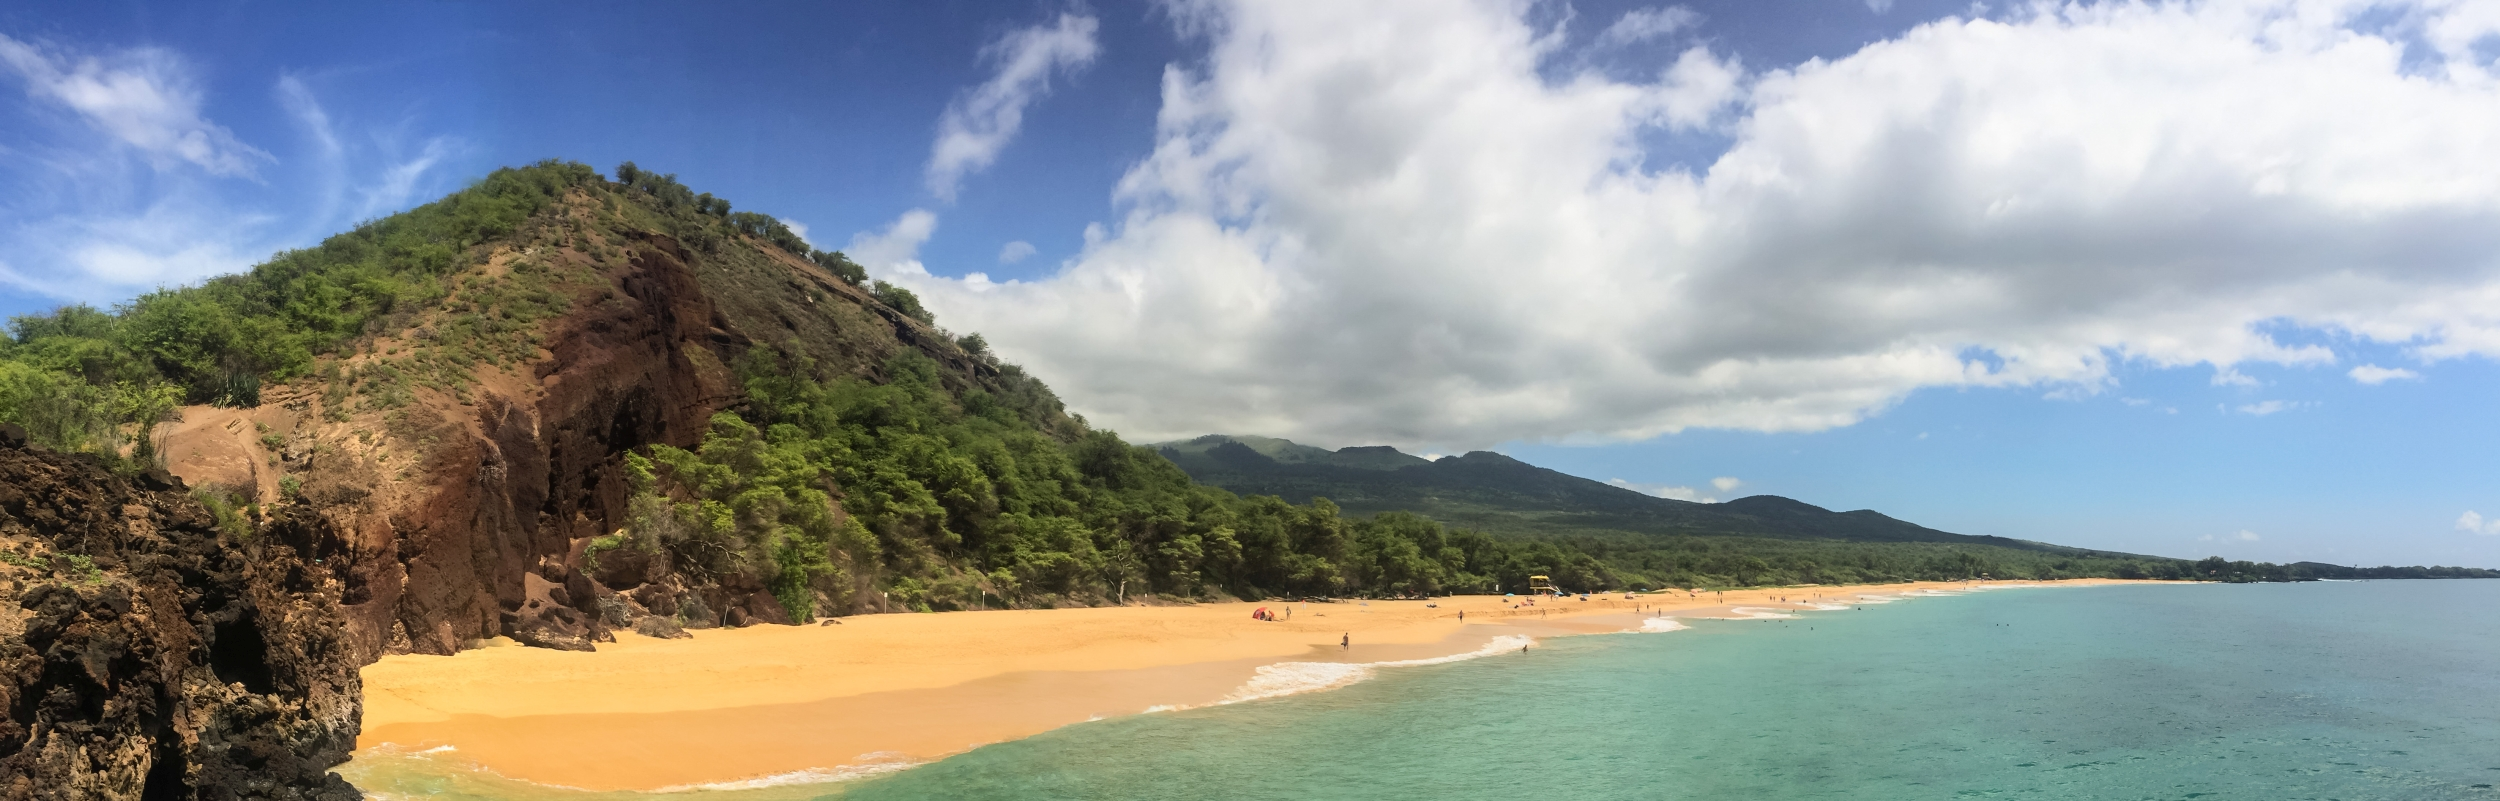 2018-Hawaii-Maui-Makena_Big_Beach_22649774315